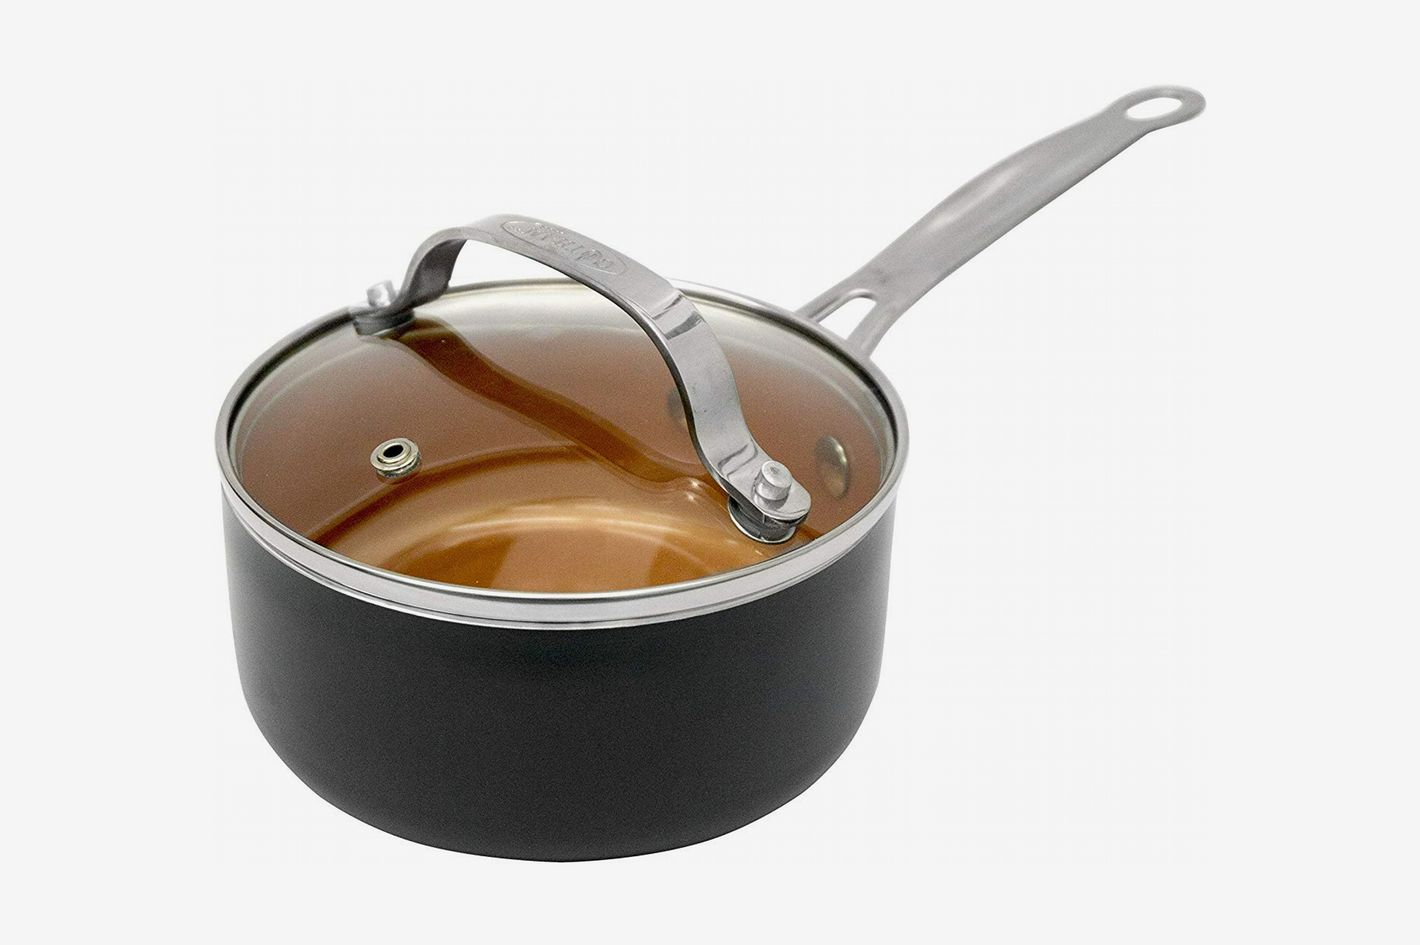 Gotham Steel Sauce Pan With Lid, Copper, 1qt